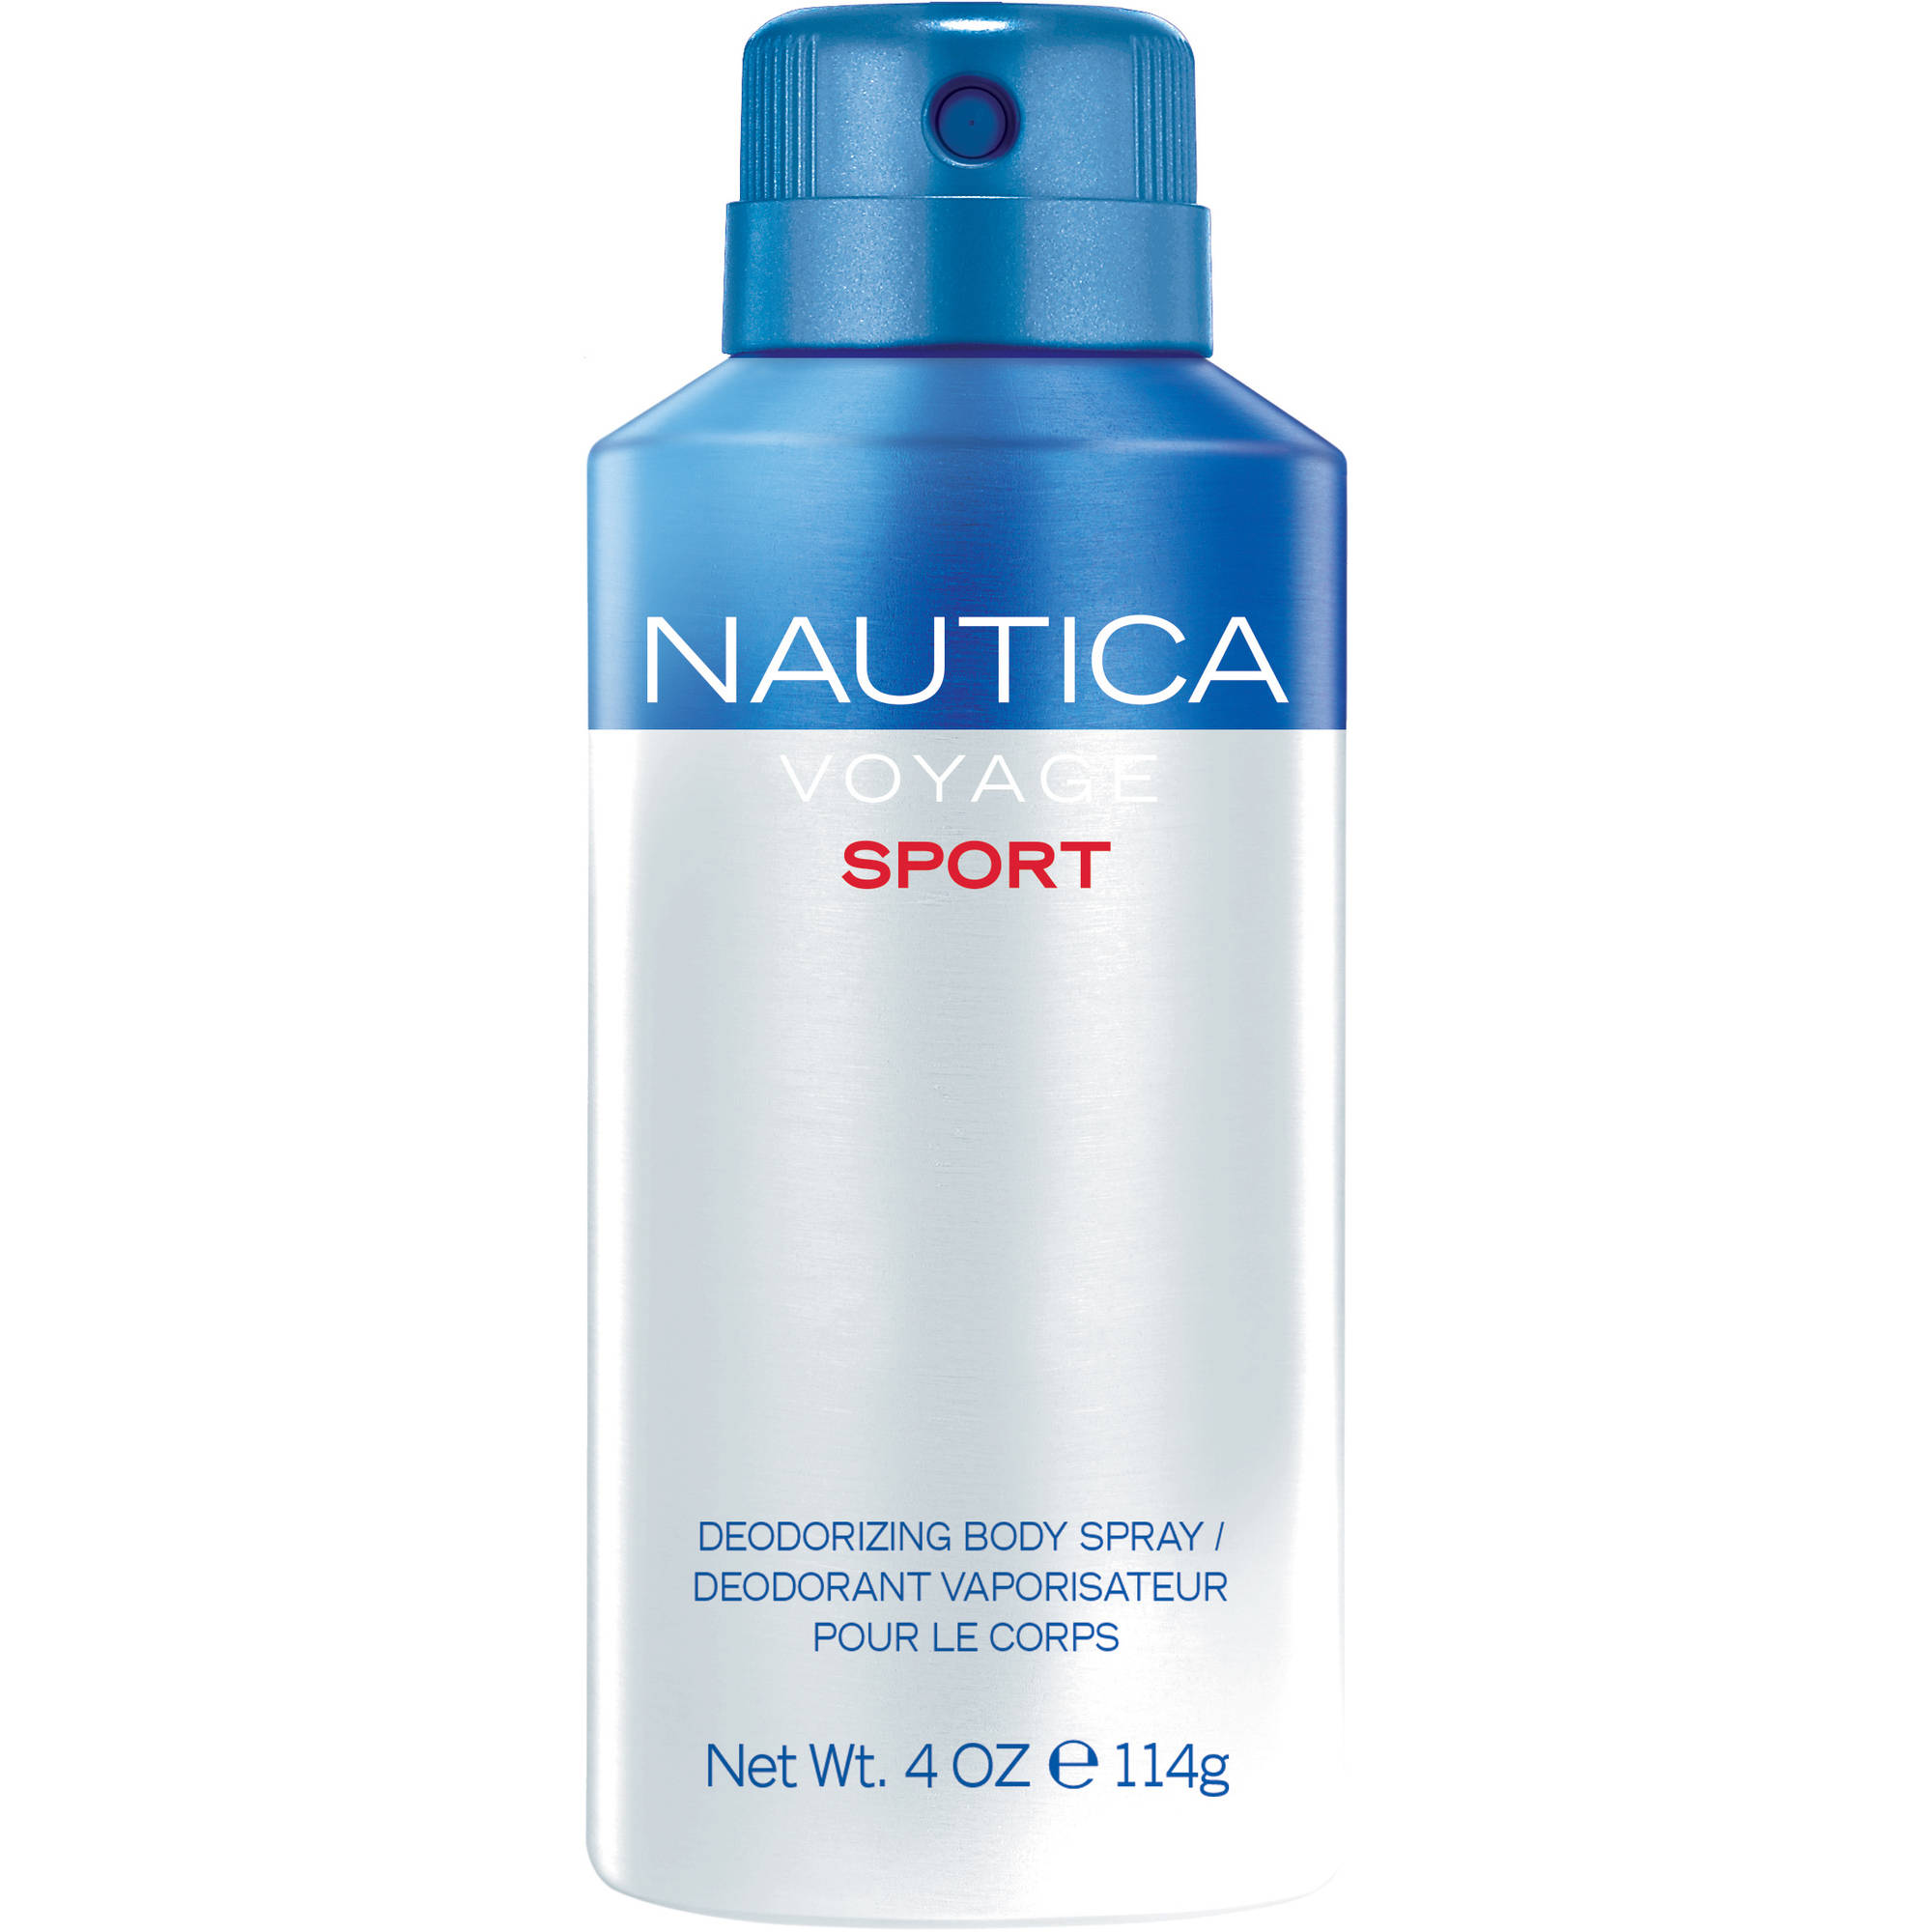 Nautica Voyage Sport Deodorizing Body Spray, 4 oz